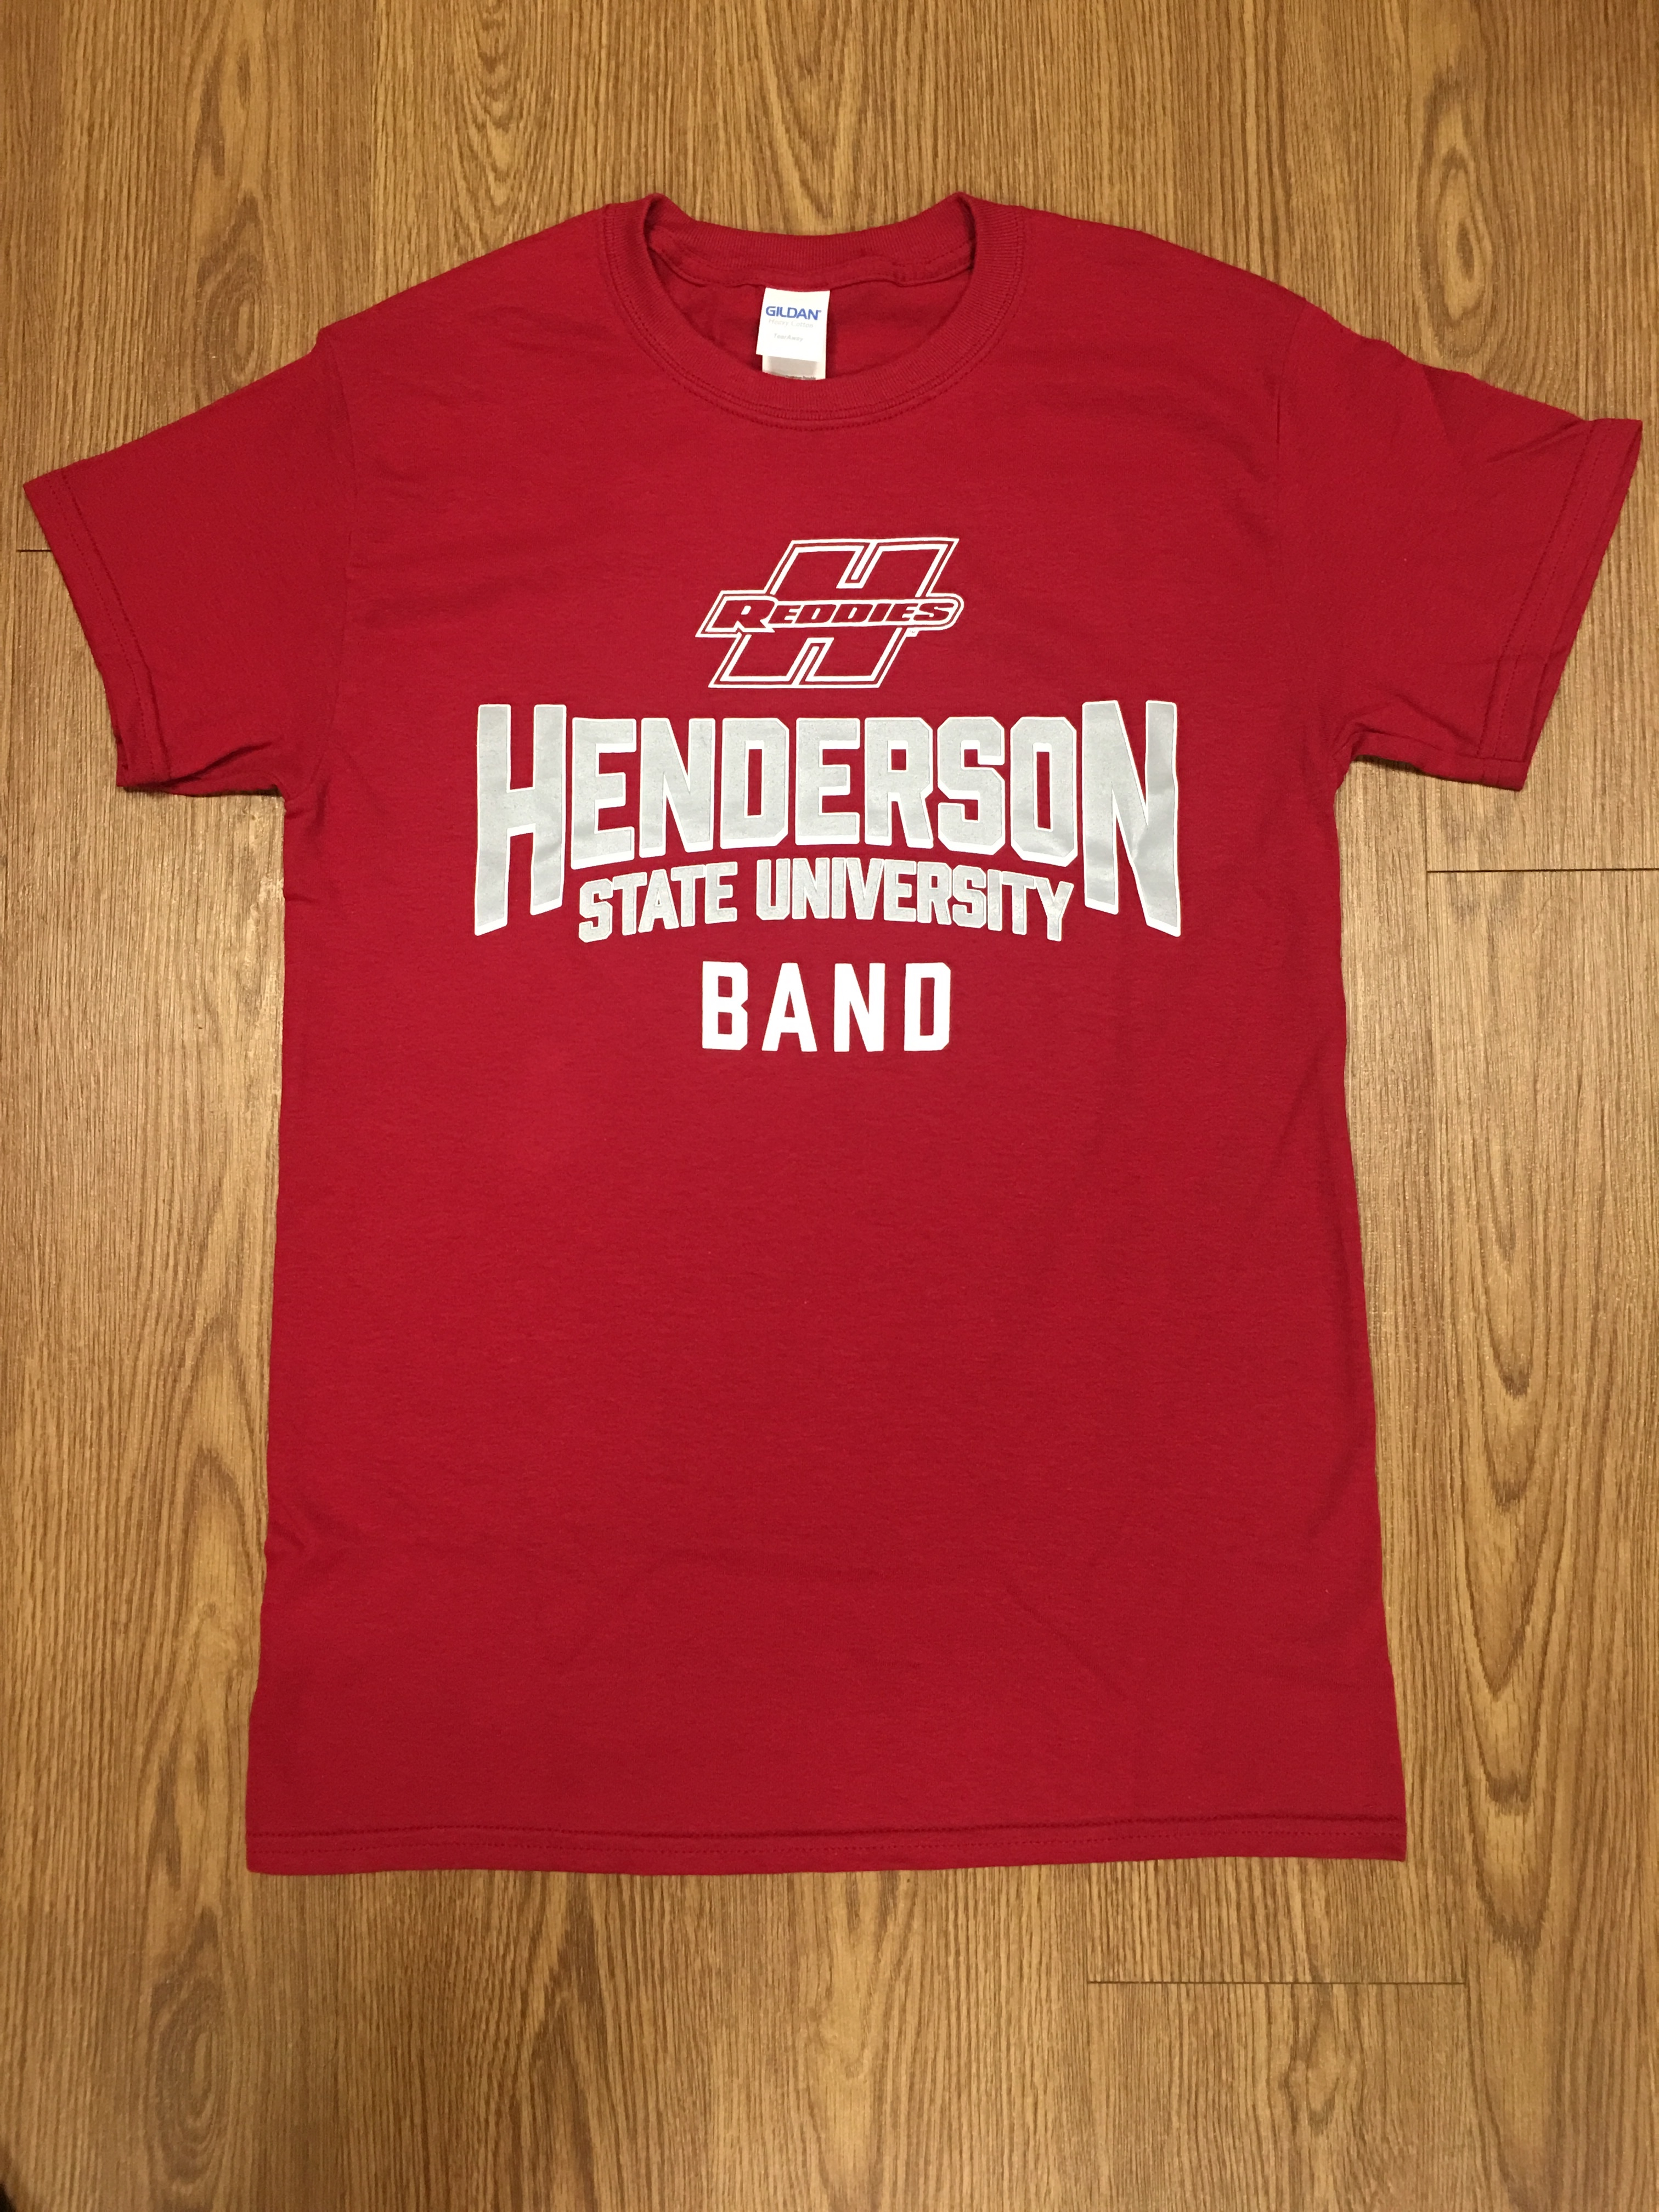 Henderson State University Band T-shirt